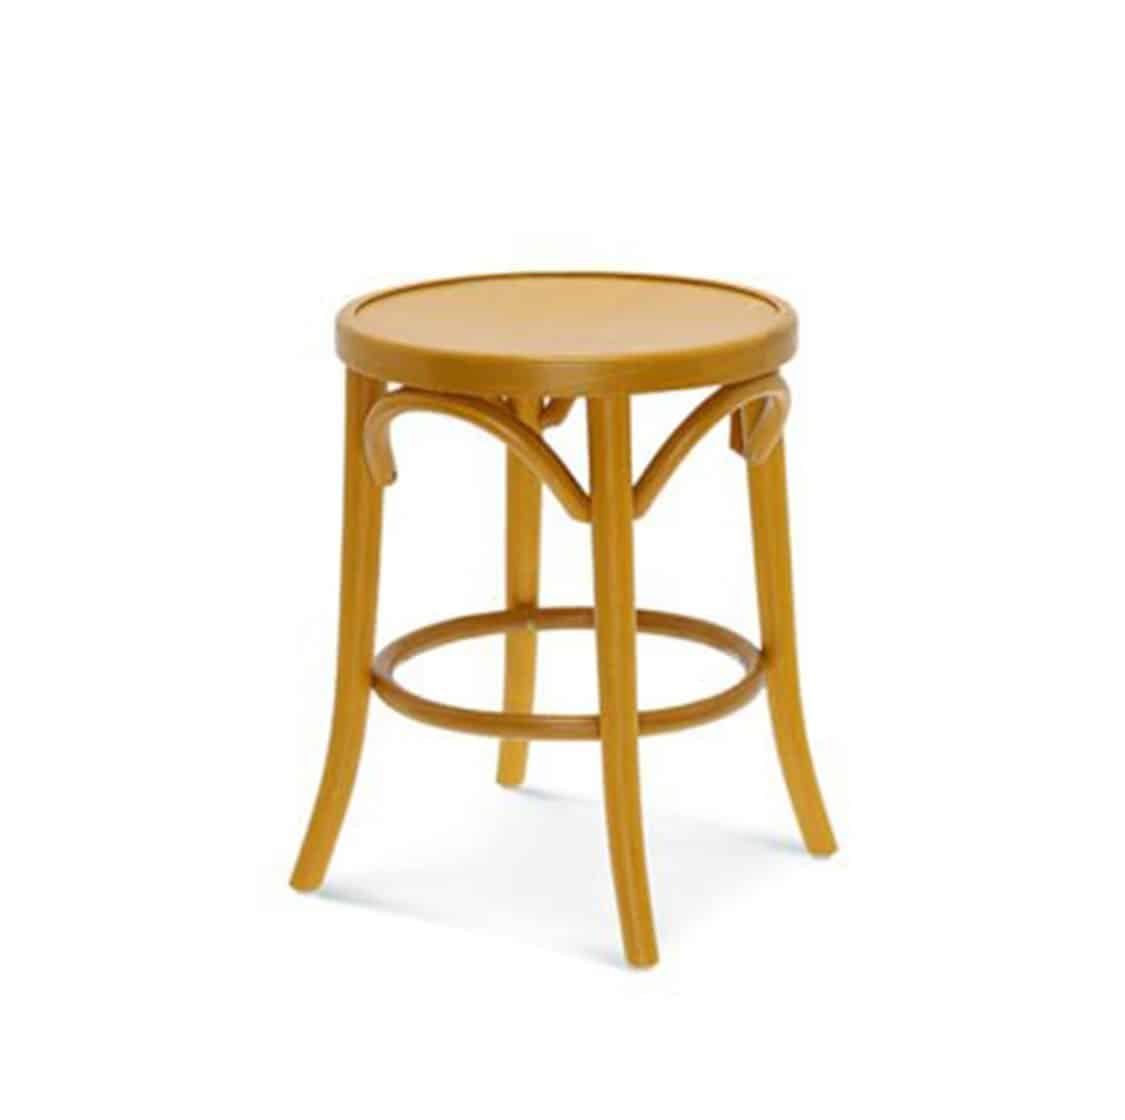 Archie low bentwood stool DeFrae Contract Furniture 2